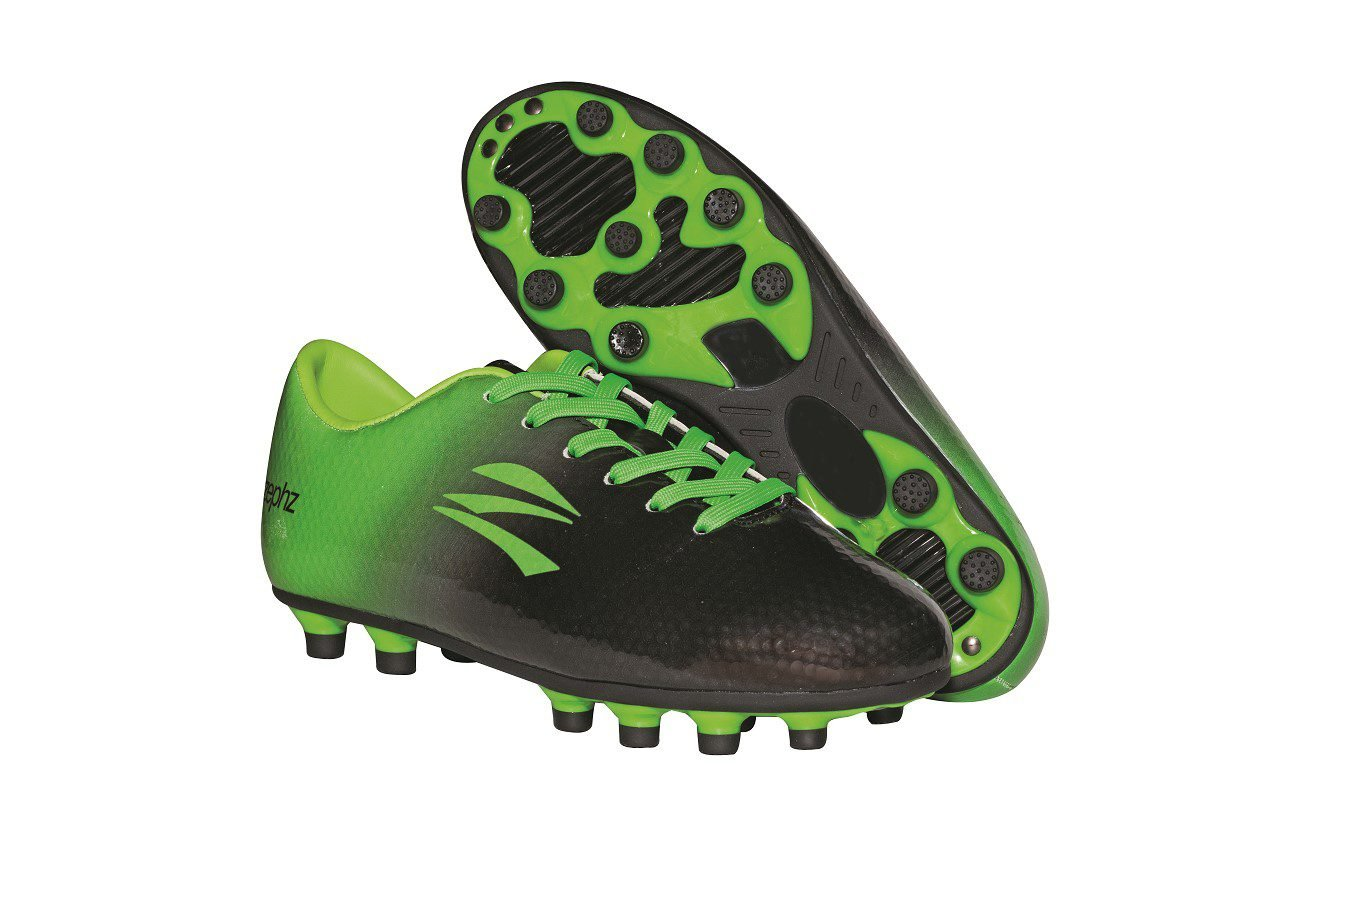 Zephz Wide Traxx Black/Lime Green Soccer Cleat Adult 10.5